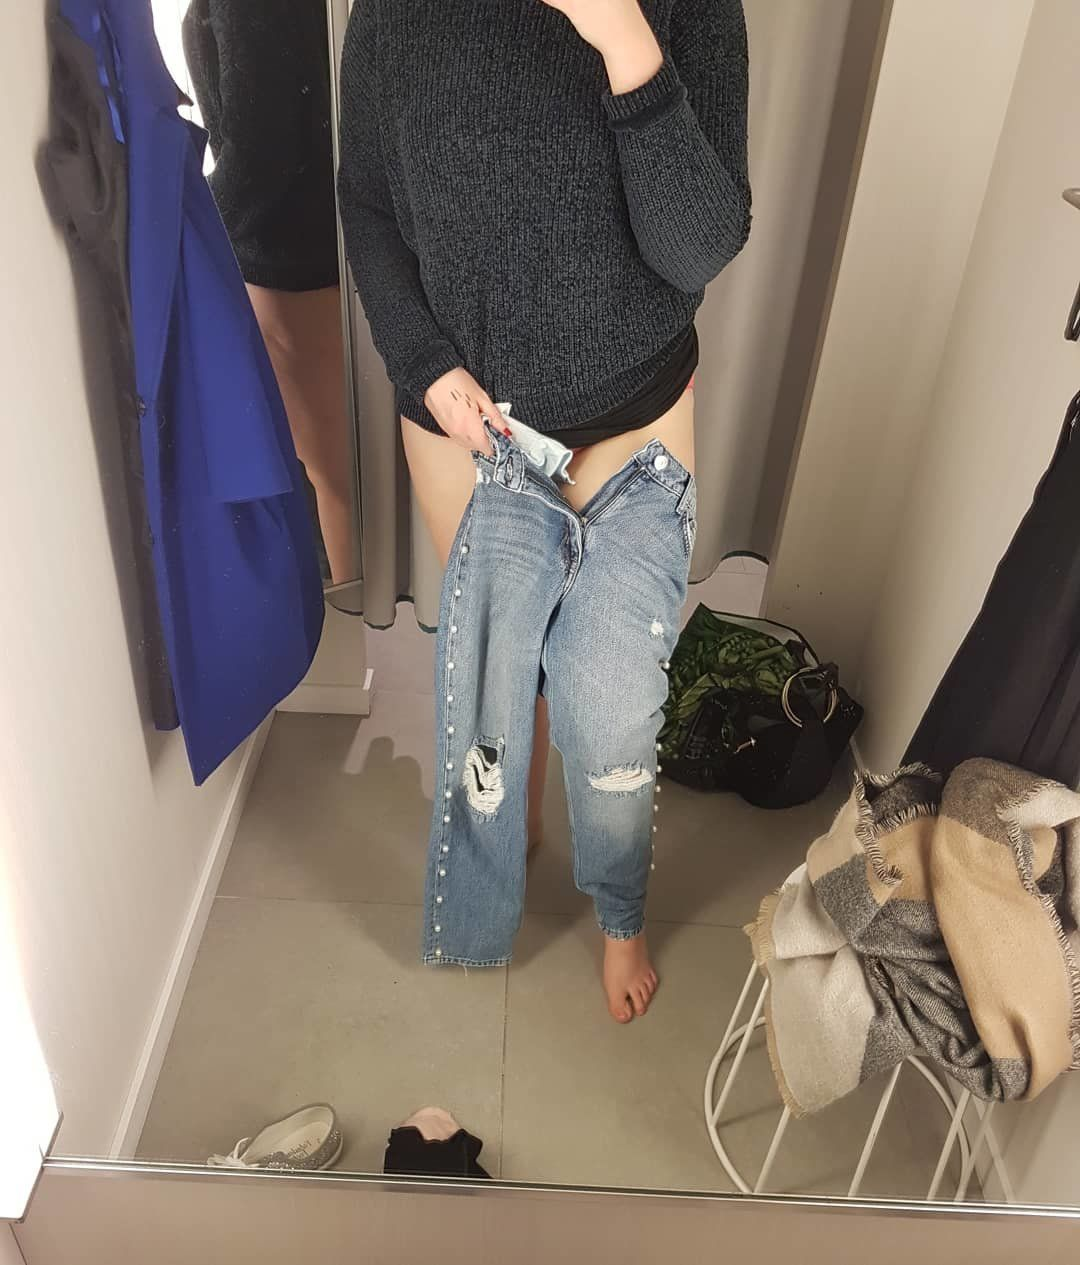 Woman Calls Out H&M For Small Sizing After Failing To Get Size 14 Jeans Over Her